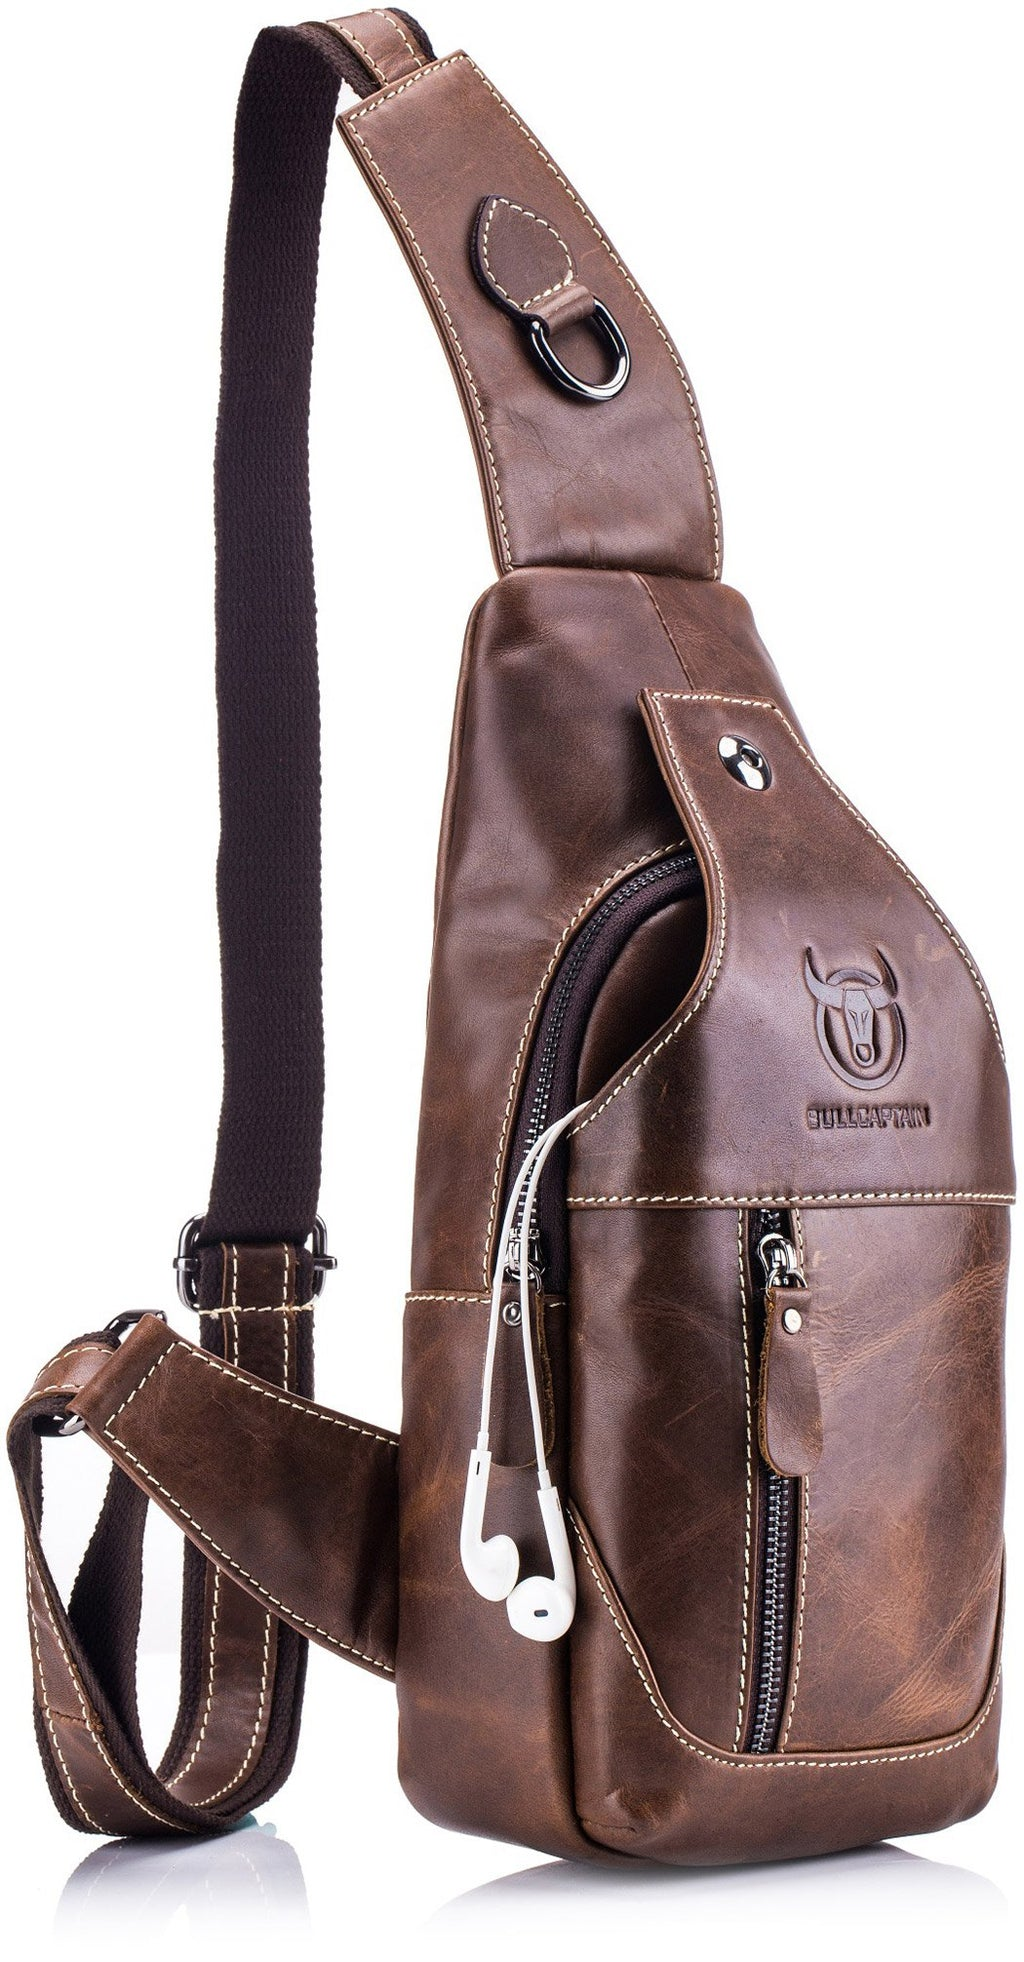 BULLCAPTAIN LEATHER SLING BAG - 019